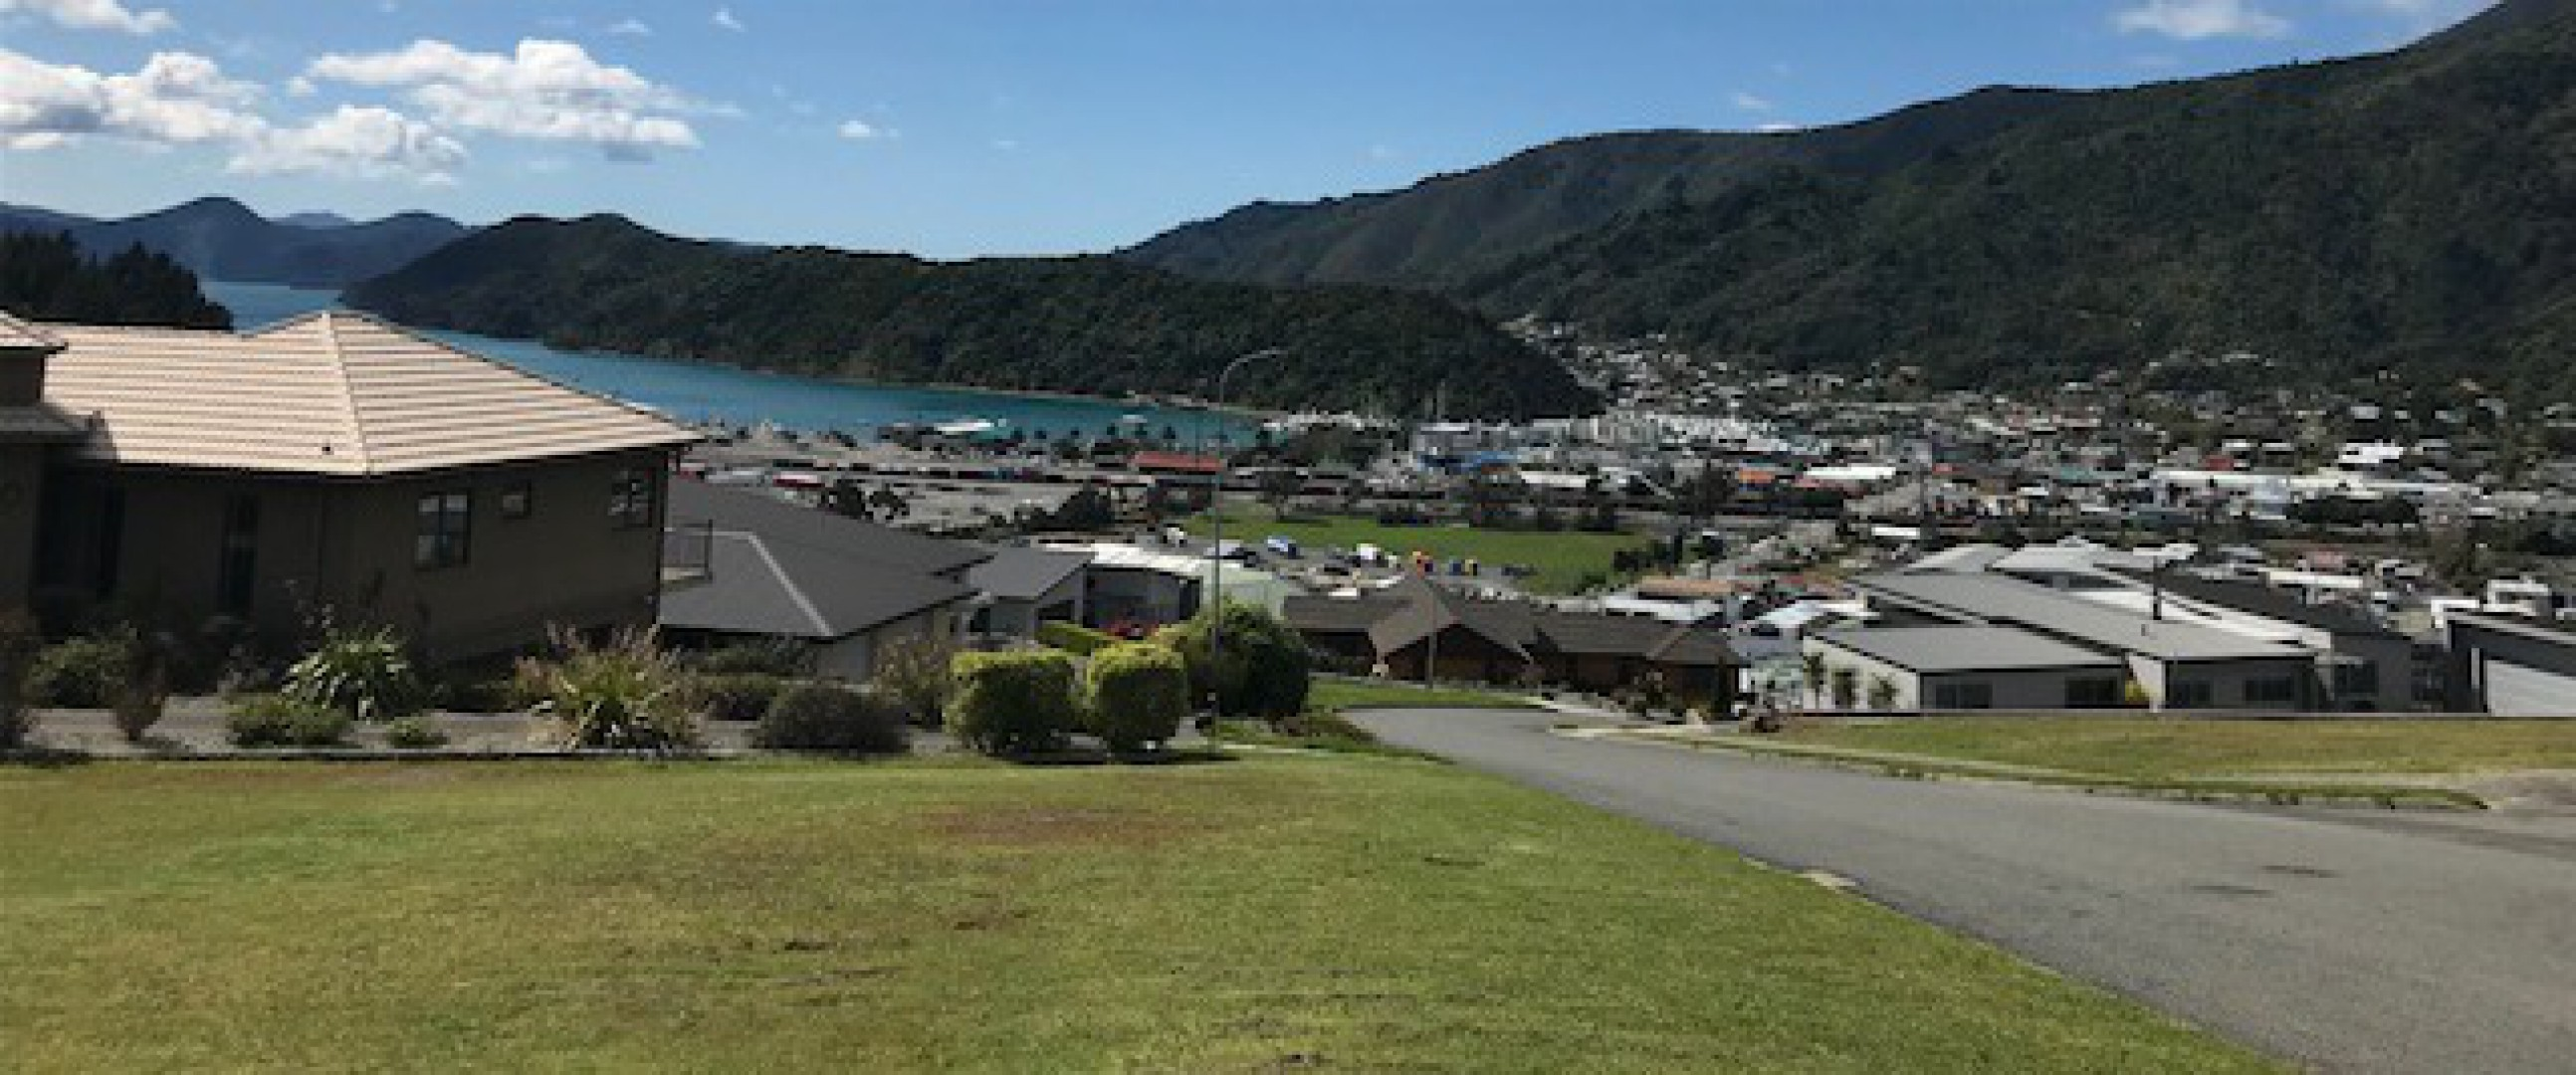 26 Harbour View Heights, Picton #1 -- listing/10548/m-v3.jpeg